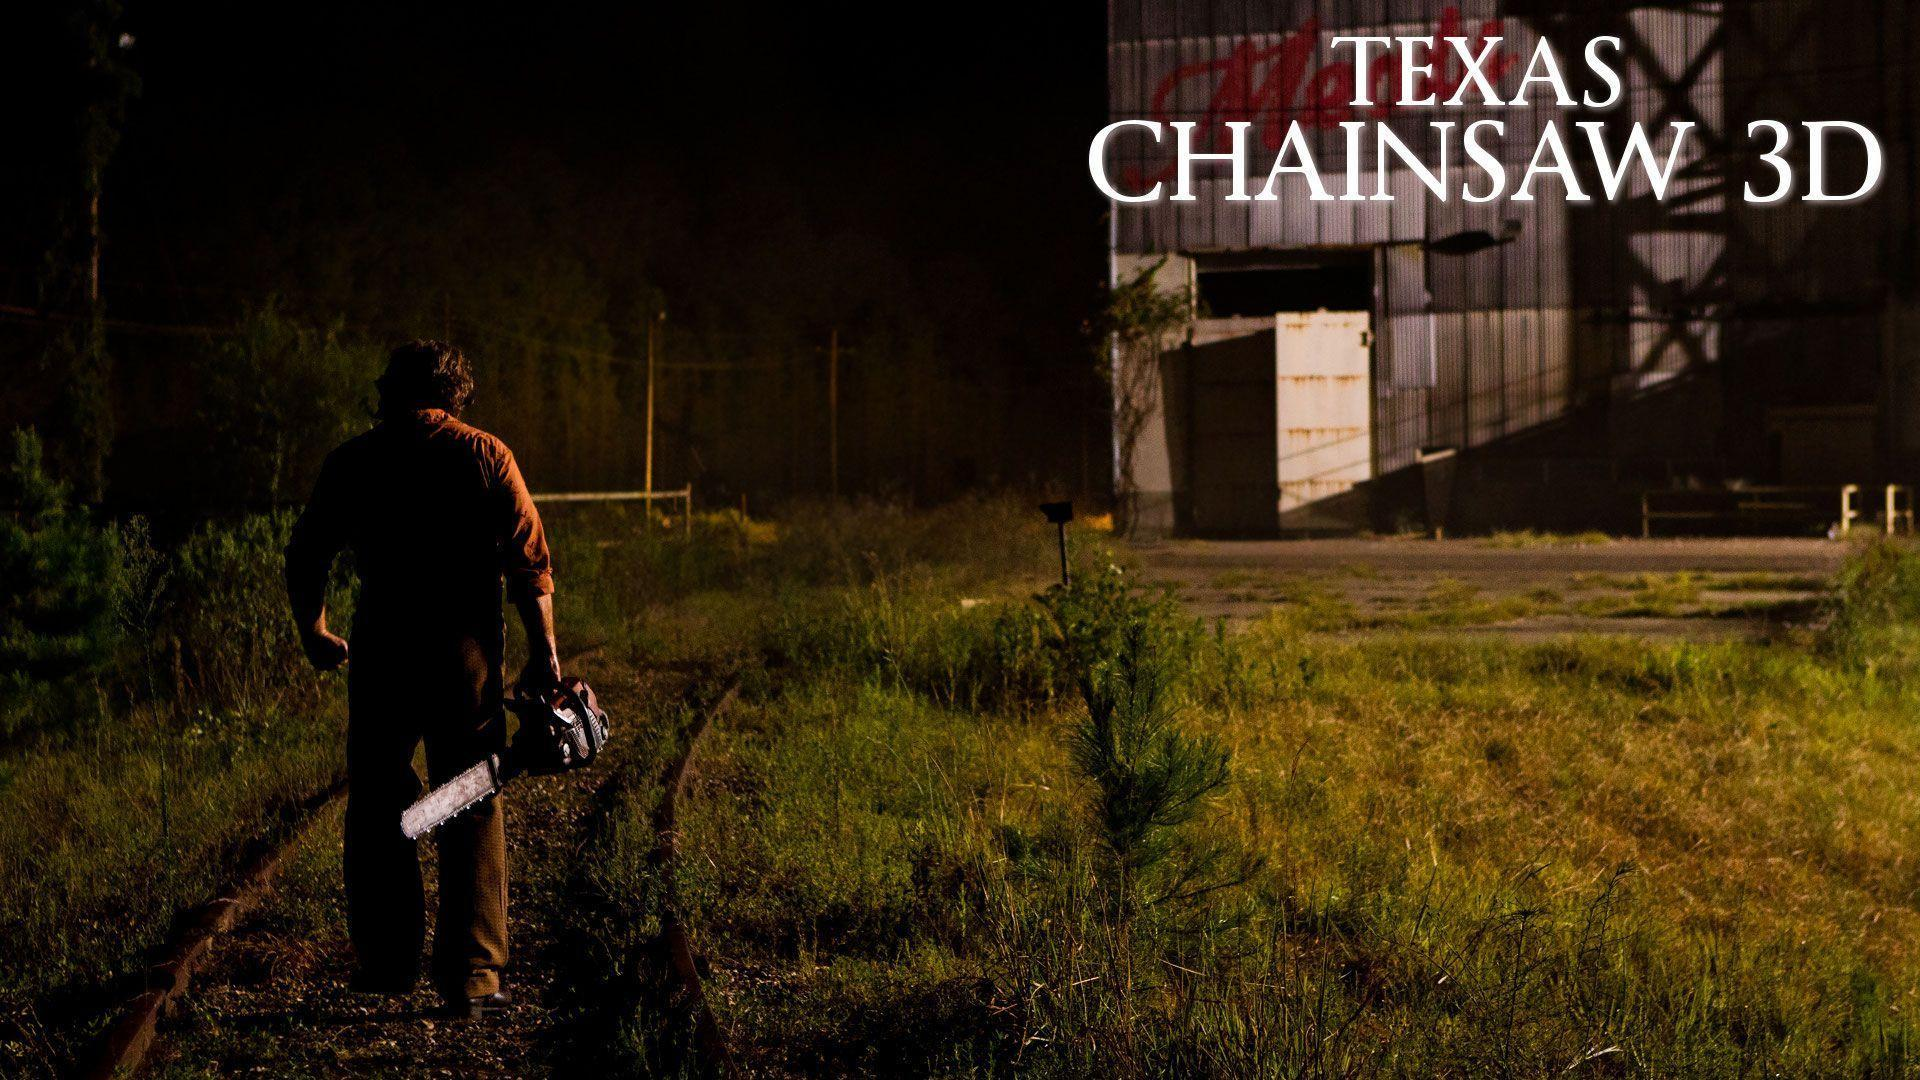 Texas Chainsaw Massacre Wallpaper Hd Texas Chainsaw Massacre Wallpapers Wallpaper Cave